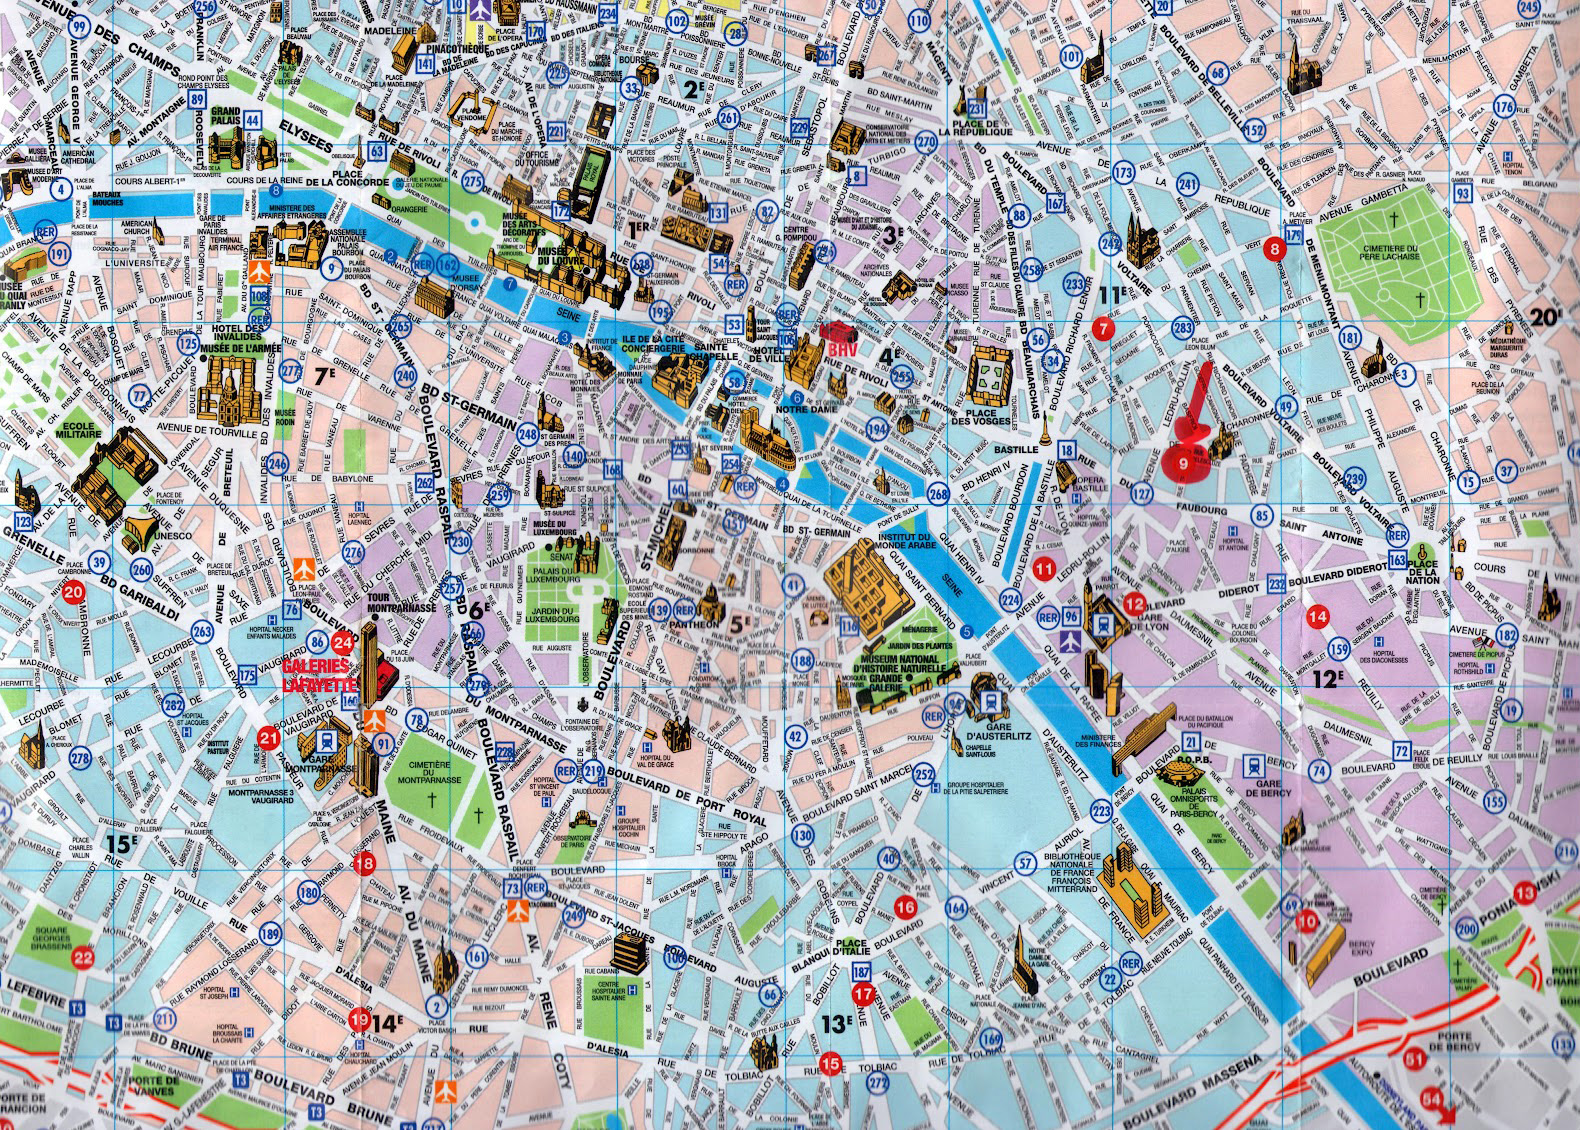 Detailed tourist map of central part of Paris city Vidianicom